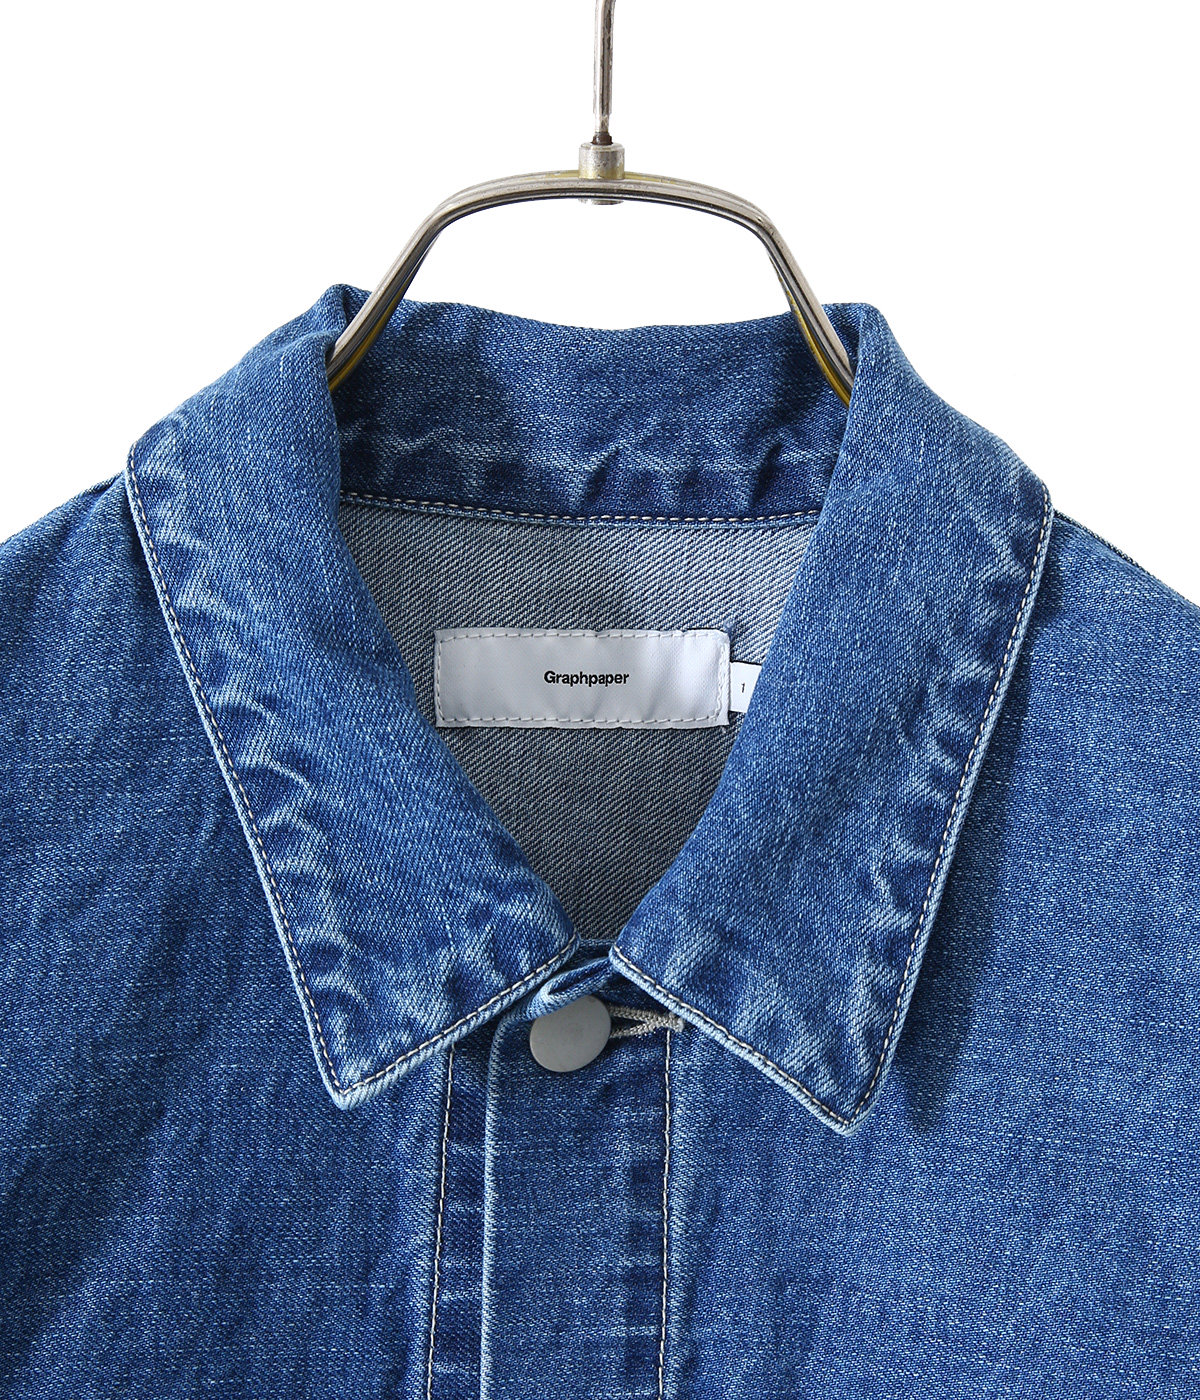 【ONLY ARK】別注 Denim Jacket -Limited-